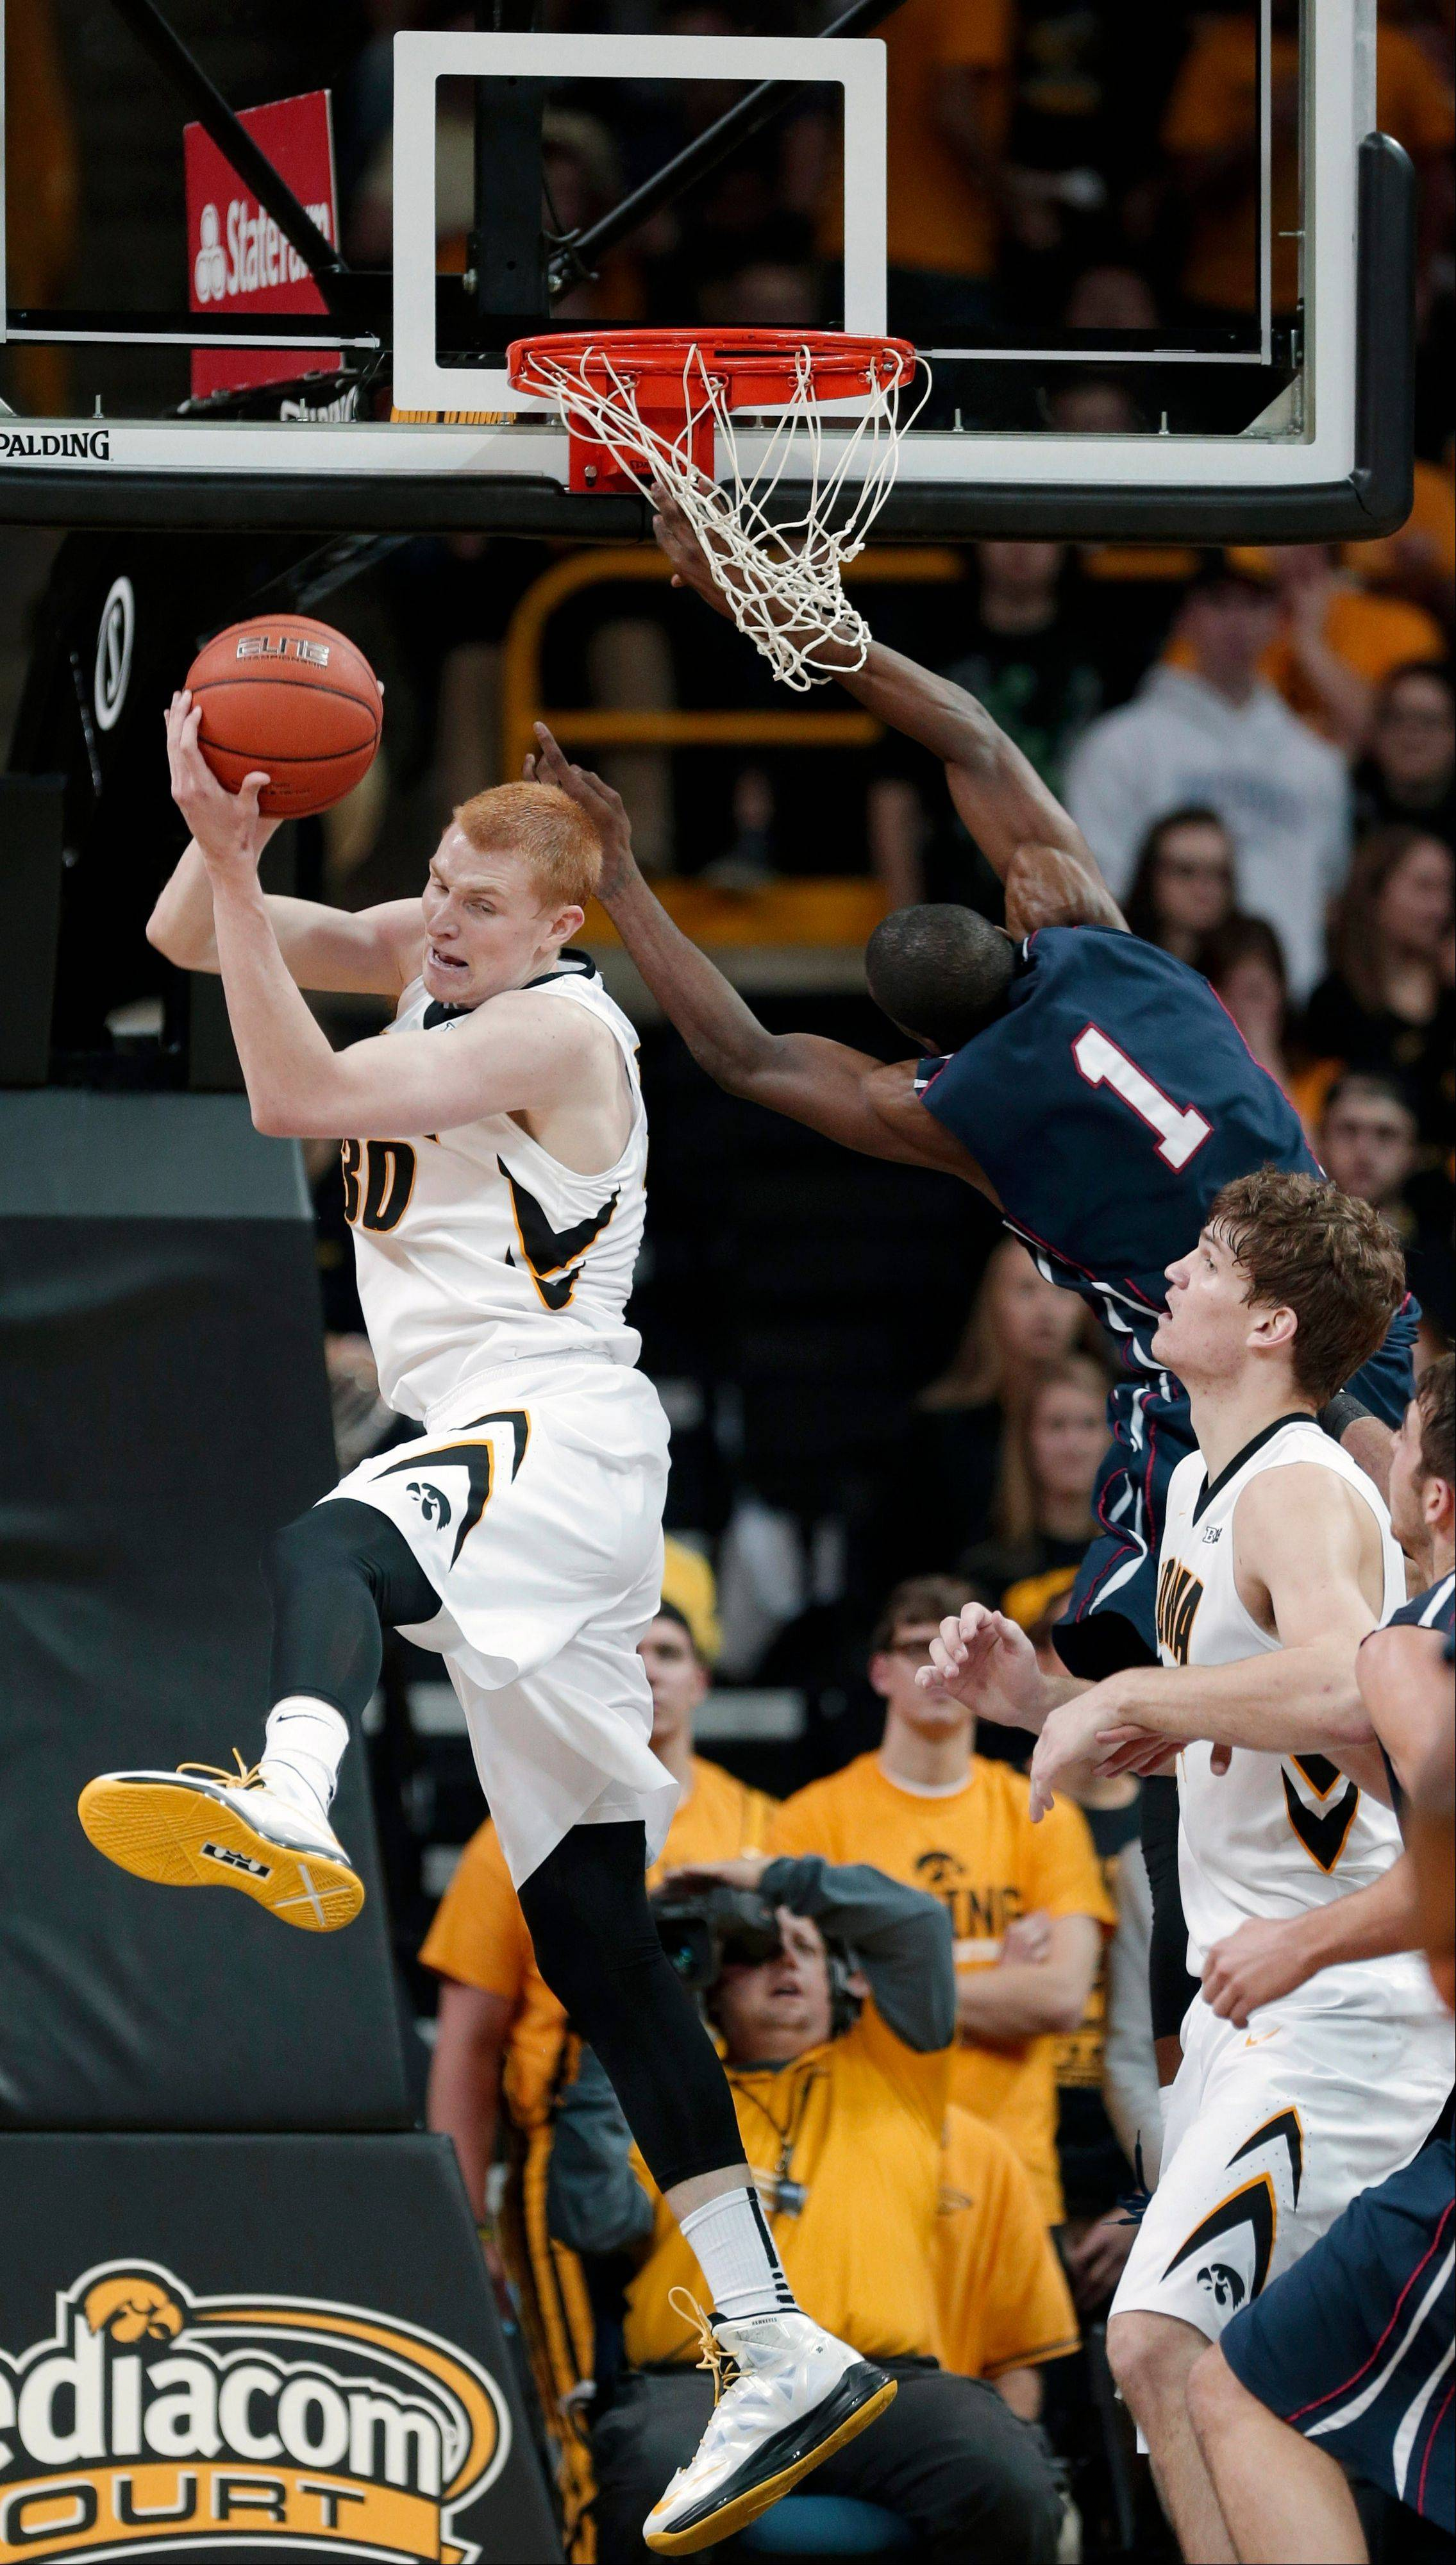 Iowa forward Aaron White, left, grabs a rebound over teammate Adam Woodbury, right, and Penn guard Tony Hicks during the second half of Friday�s game in Iowa City.